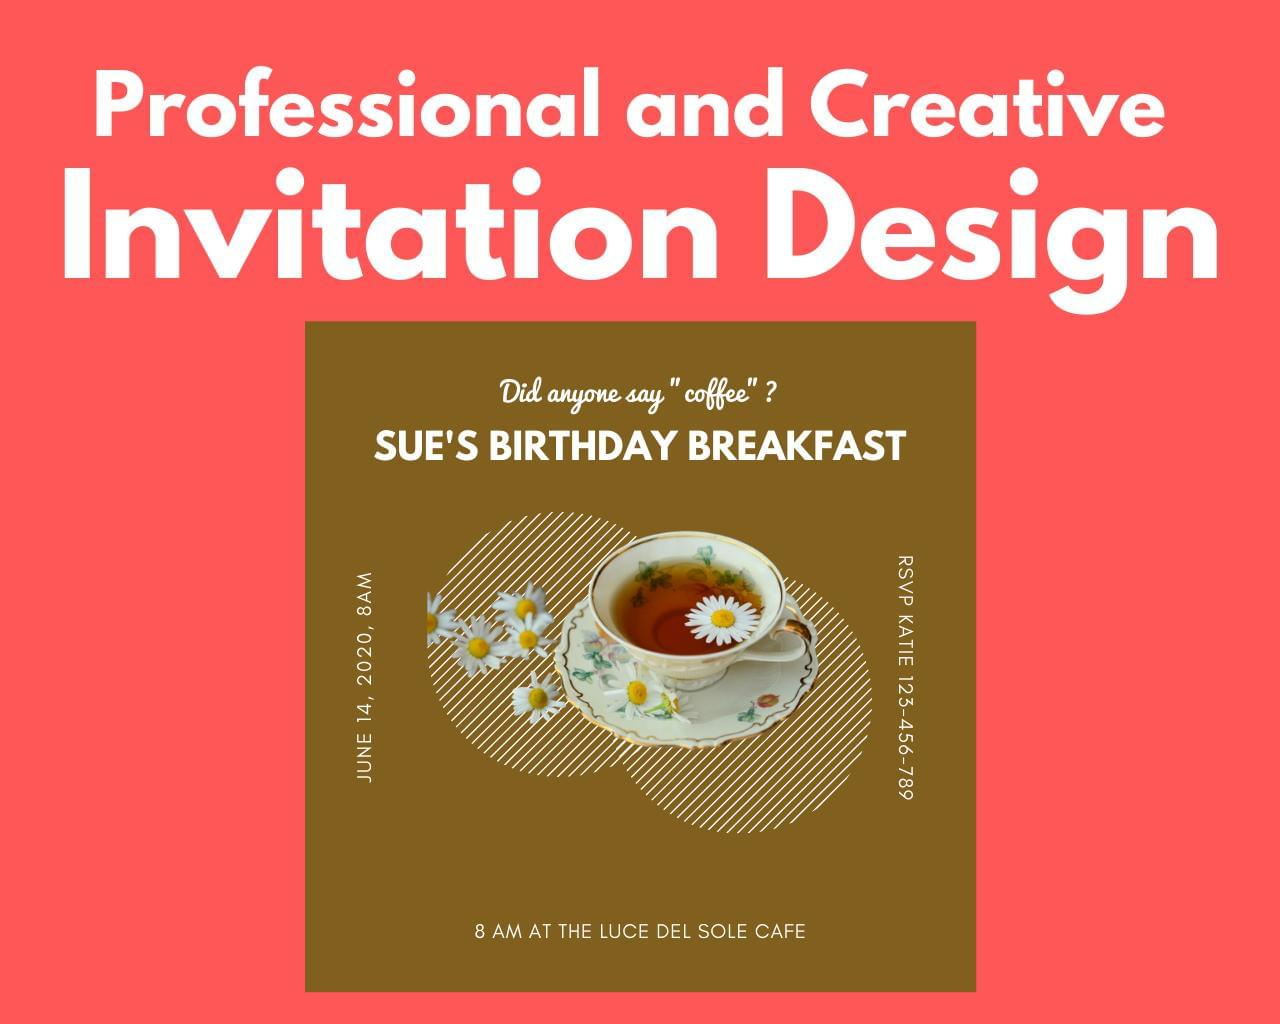 Professional and Creative Invitation Design by DePautaMadre - 119483